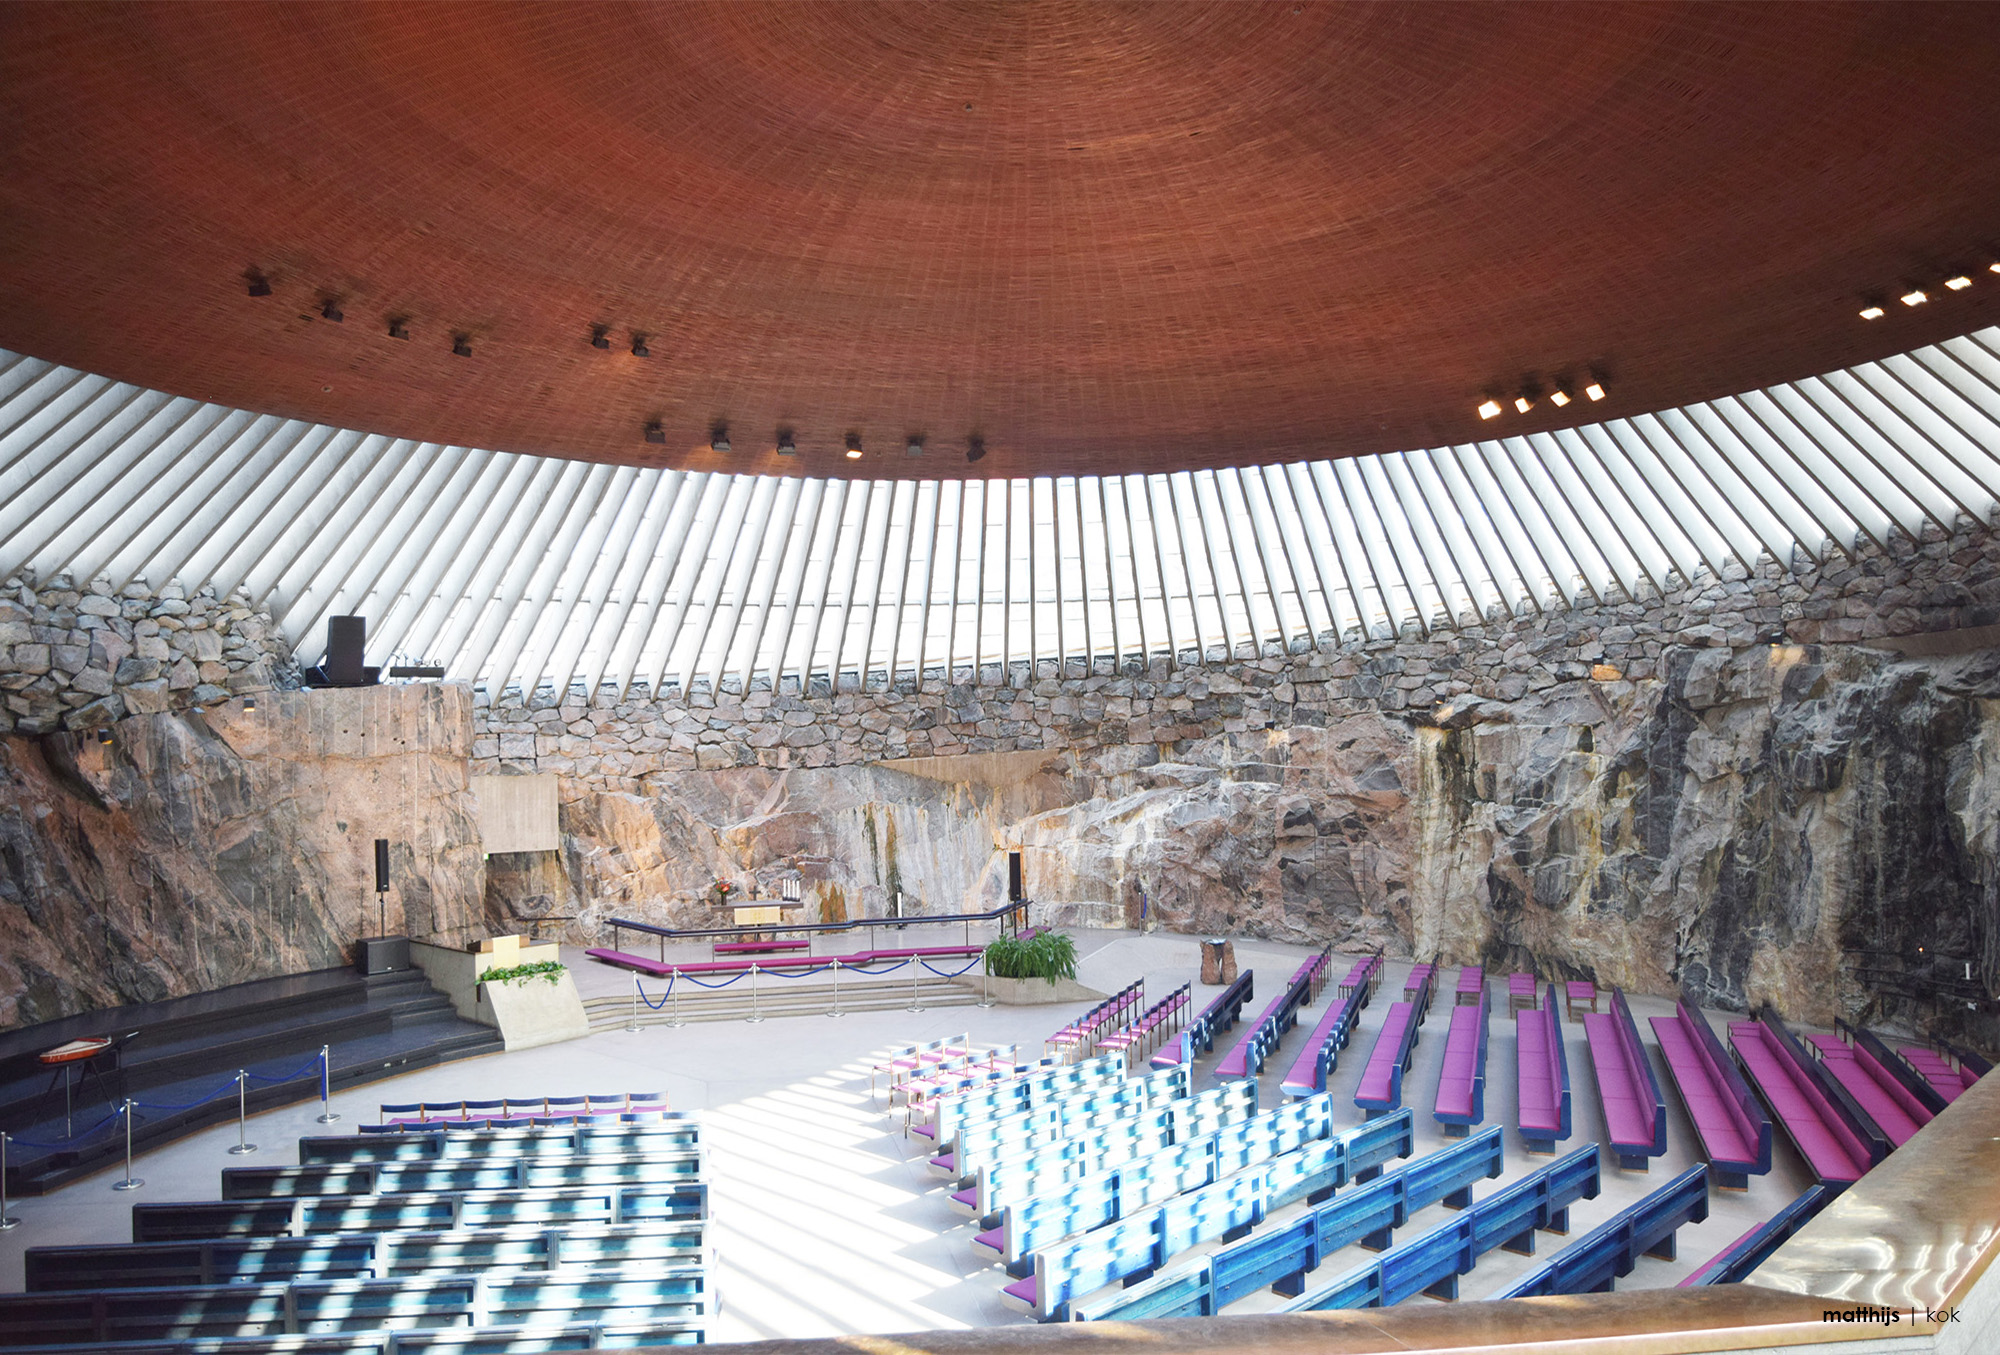 Temppeliaukio Church (The Rock Church), Helsinki, Finland | Photo by Matthijs Kok